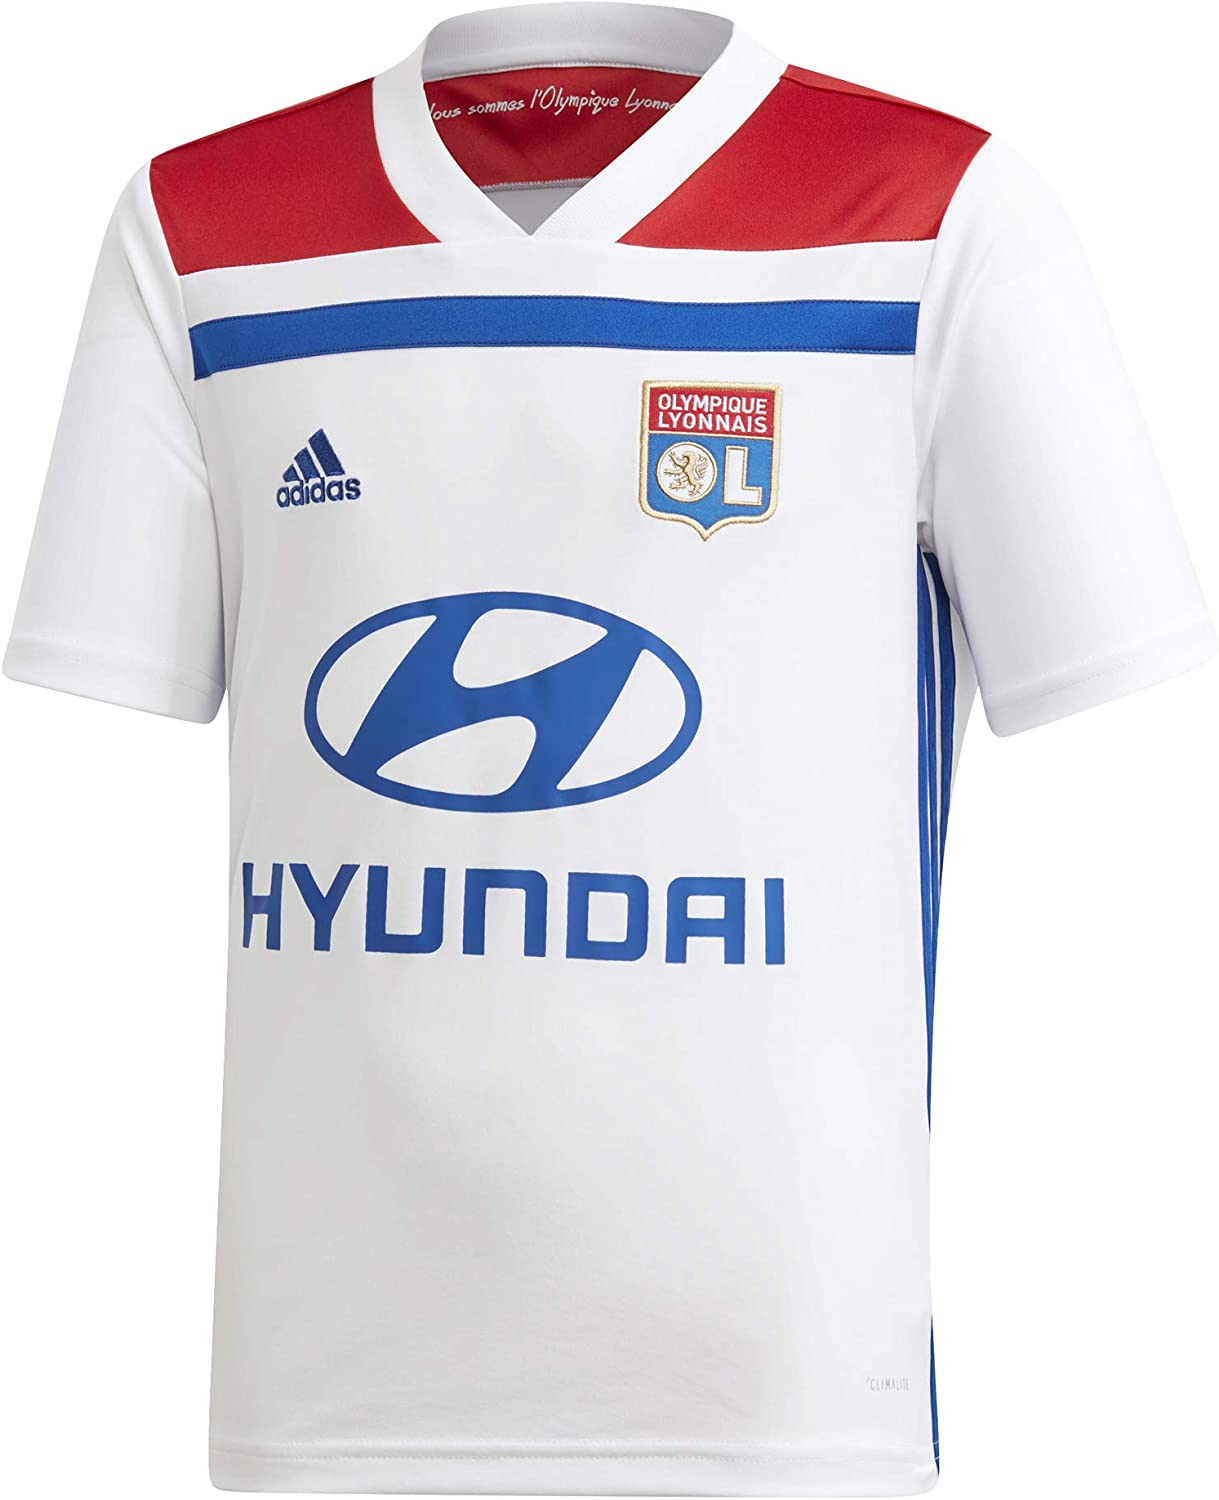 Adidas Olympique Lyon Home Football Soccer Trikot (Kids) T